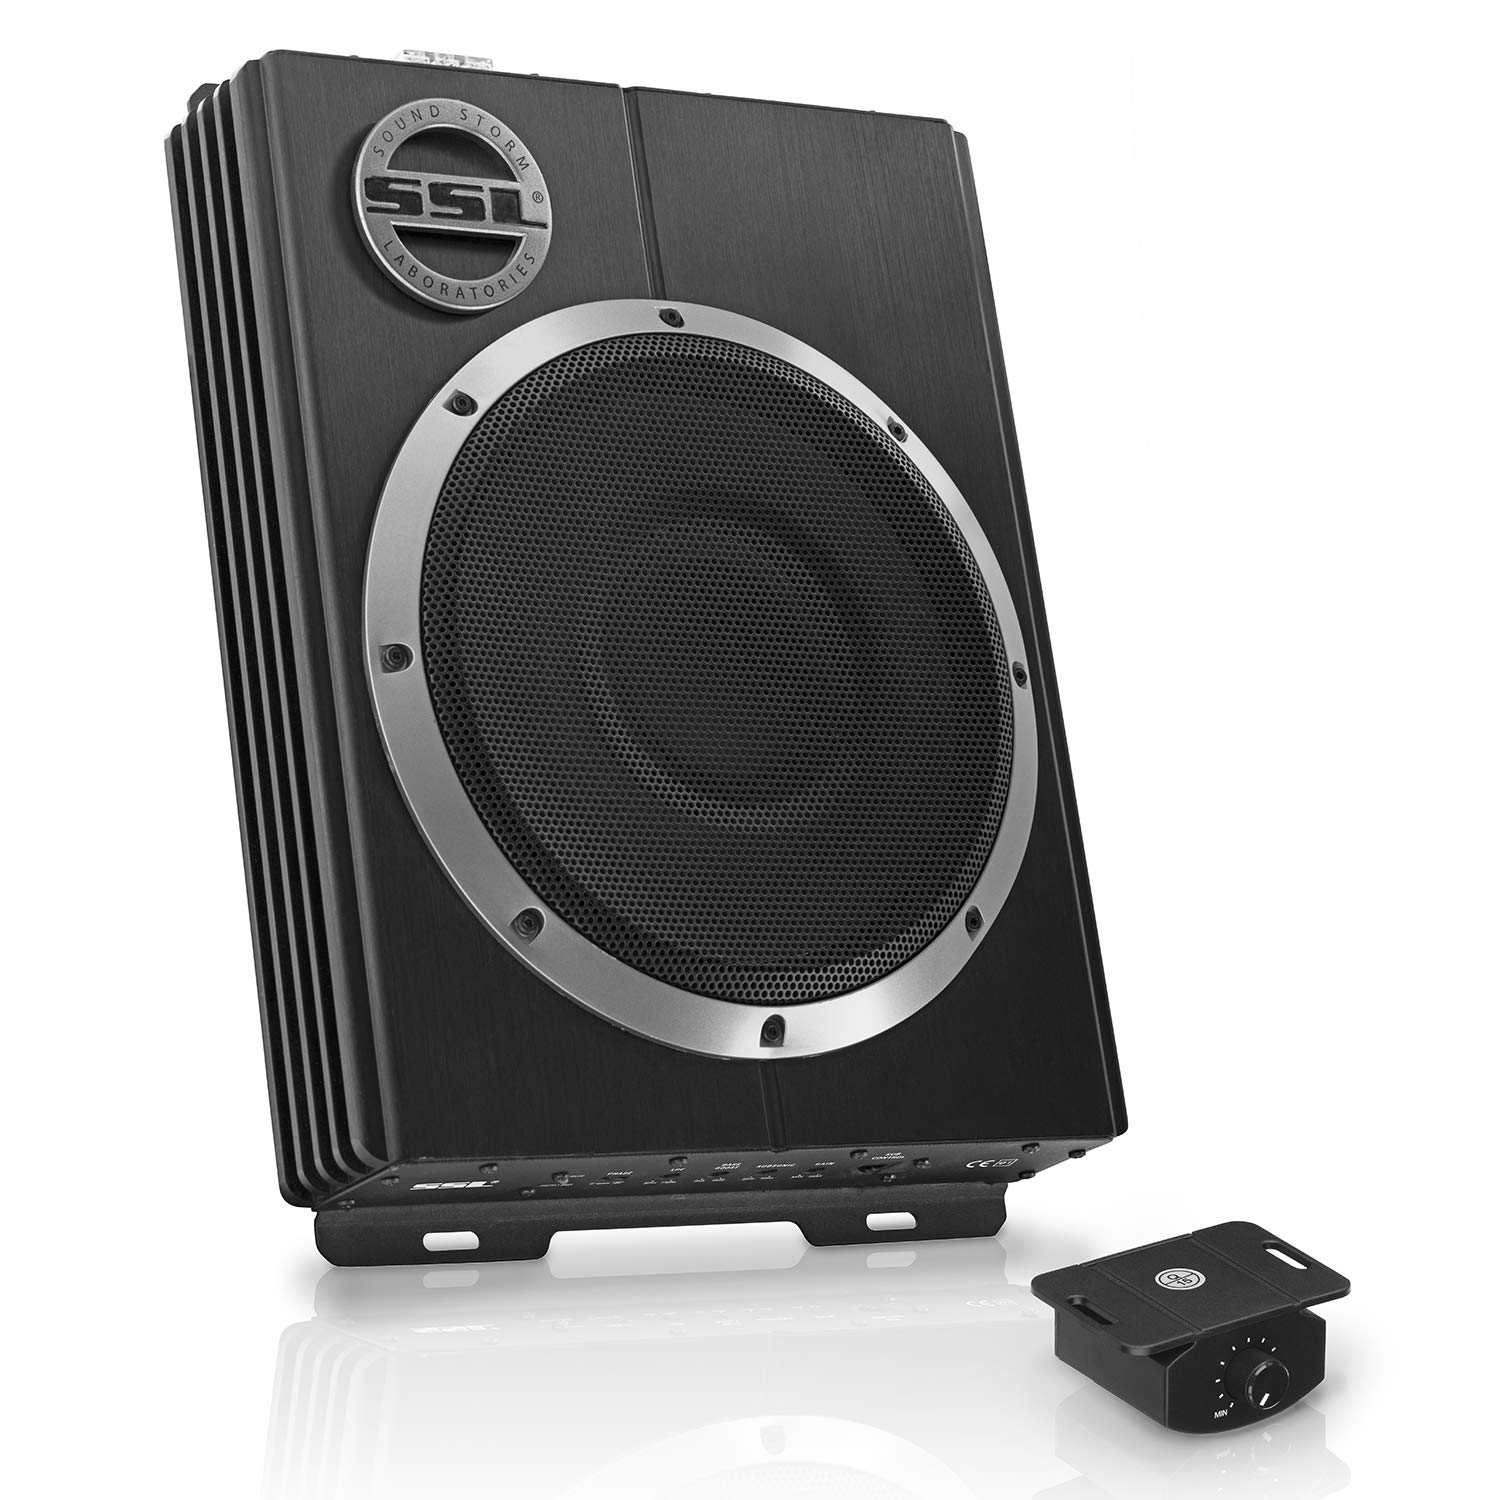 Sound Storm Lopro10 Amplified Car Subwoofer 1200 Watts Loudspeaker System Crossover Network Speaker Protection Circuit Max Power Low Profile 10 Inch Remote Control Great For Vehicles